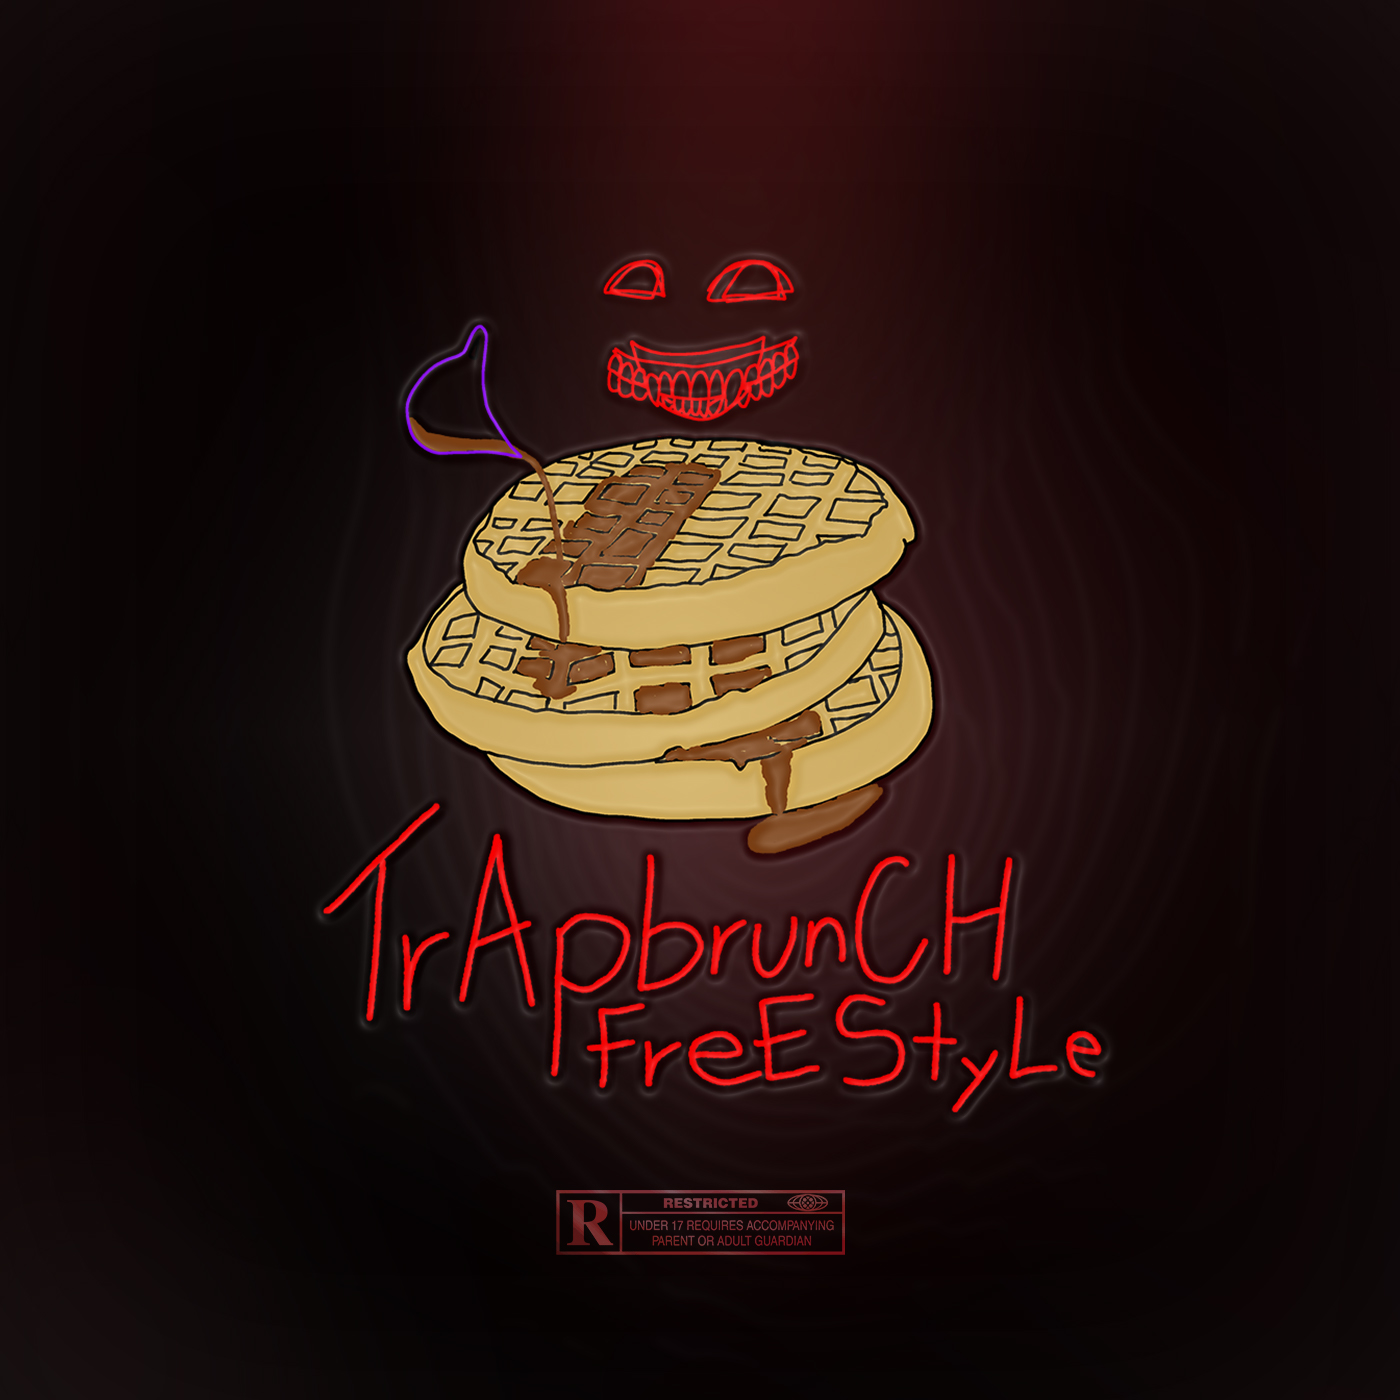 TrApbrunCH FreEStyLe